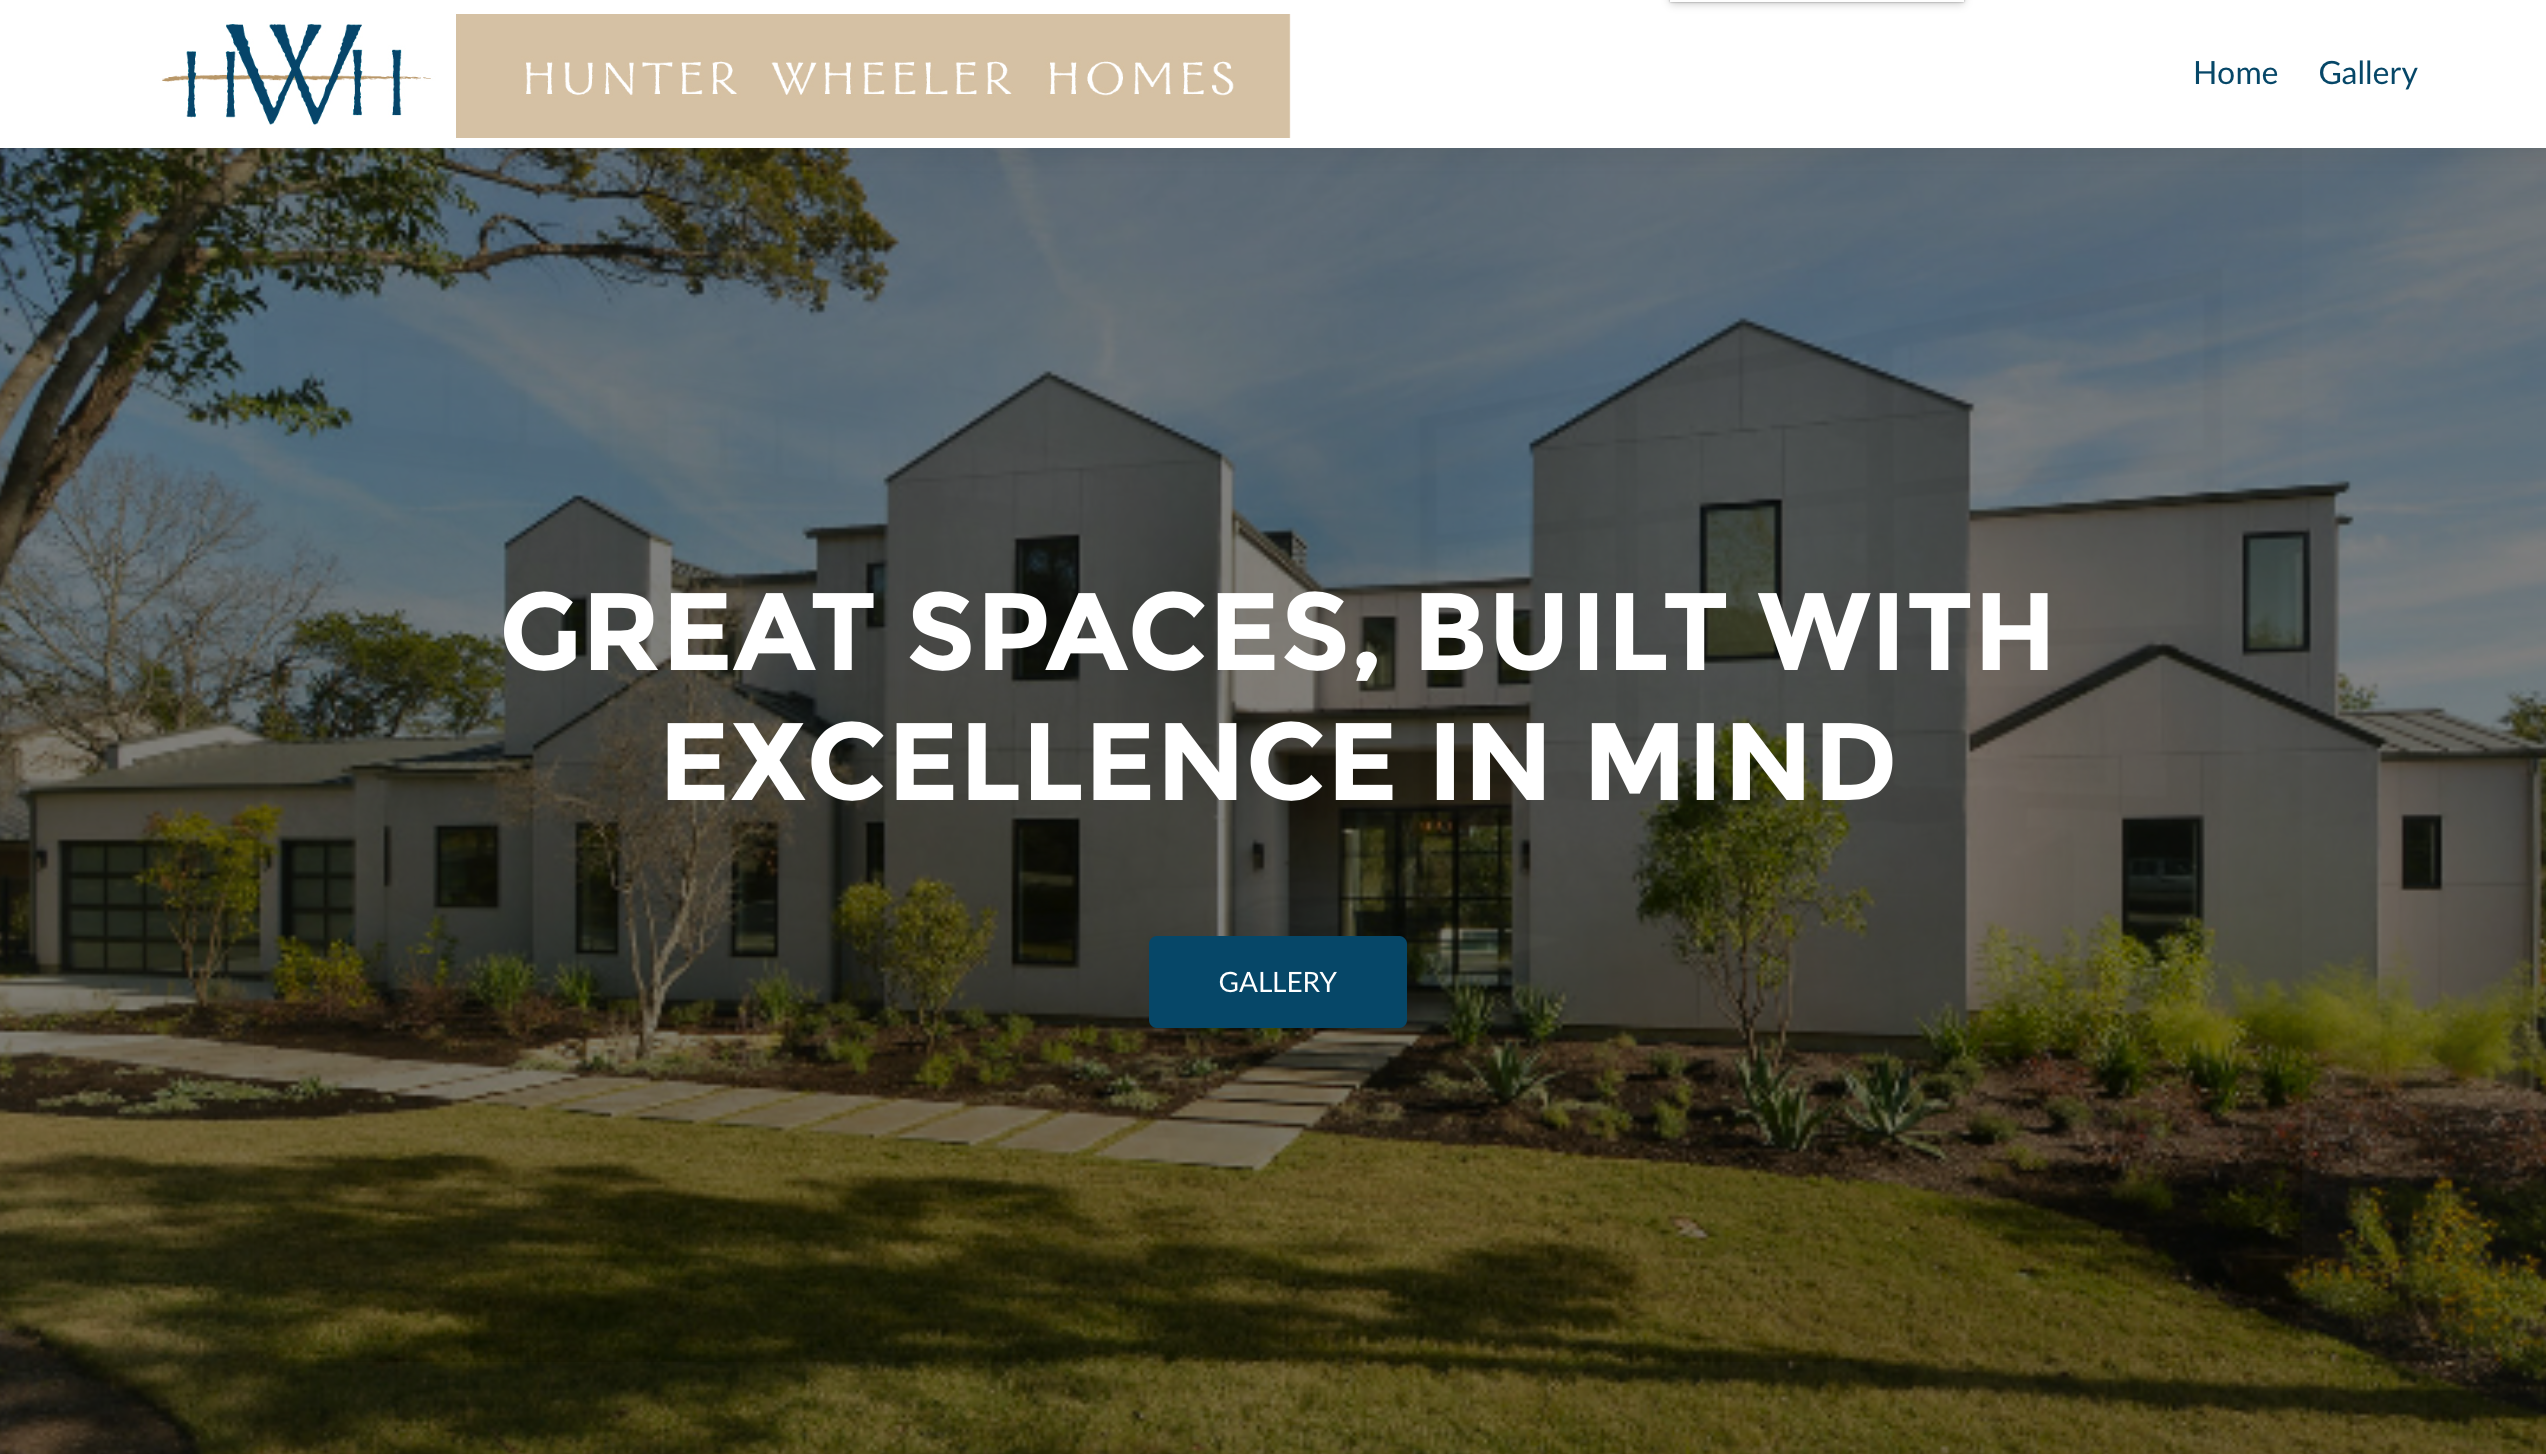 BigStar Creative, Hunter Wheeler Homes